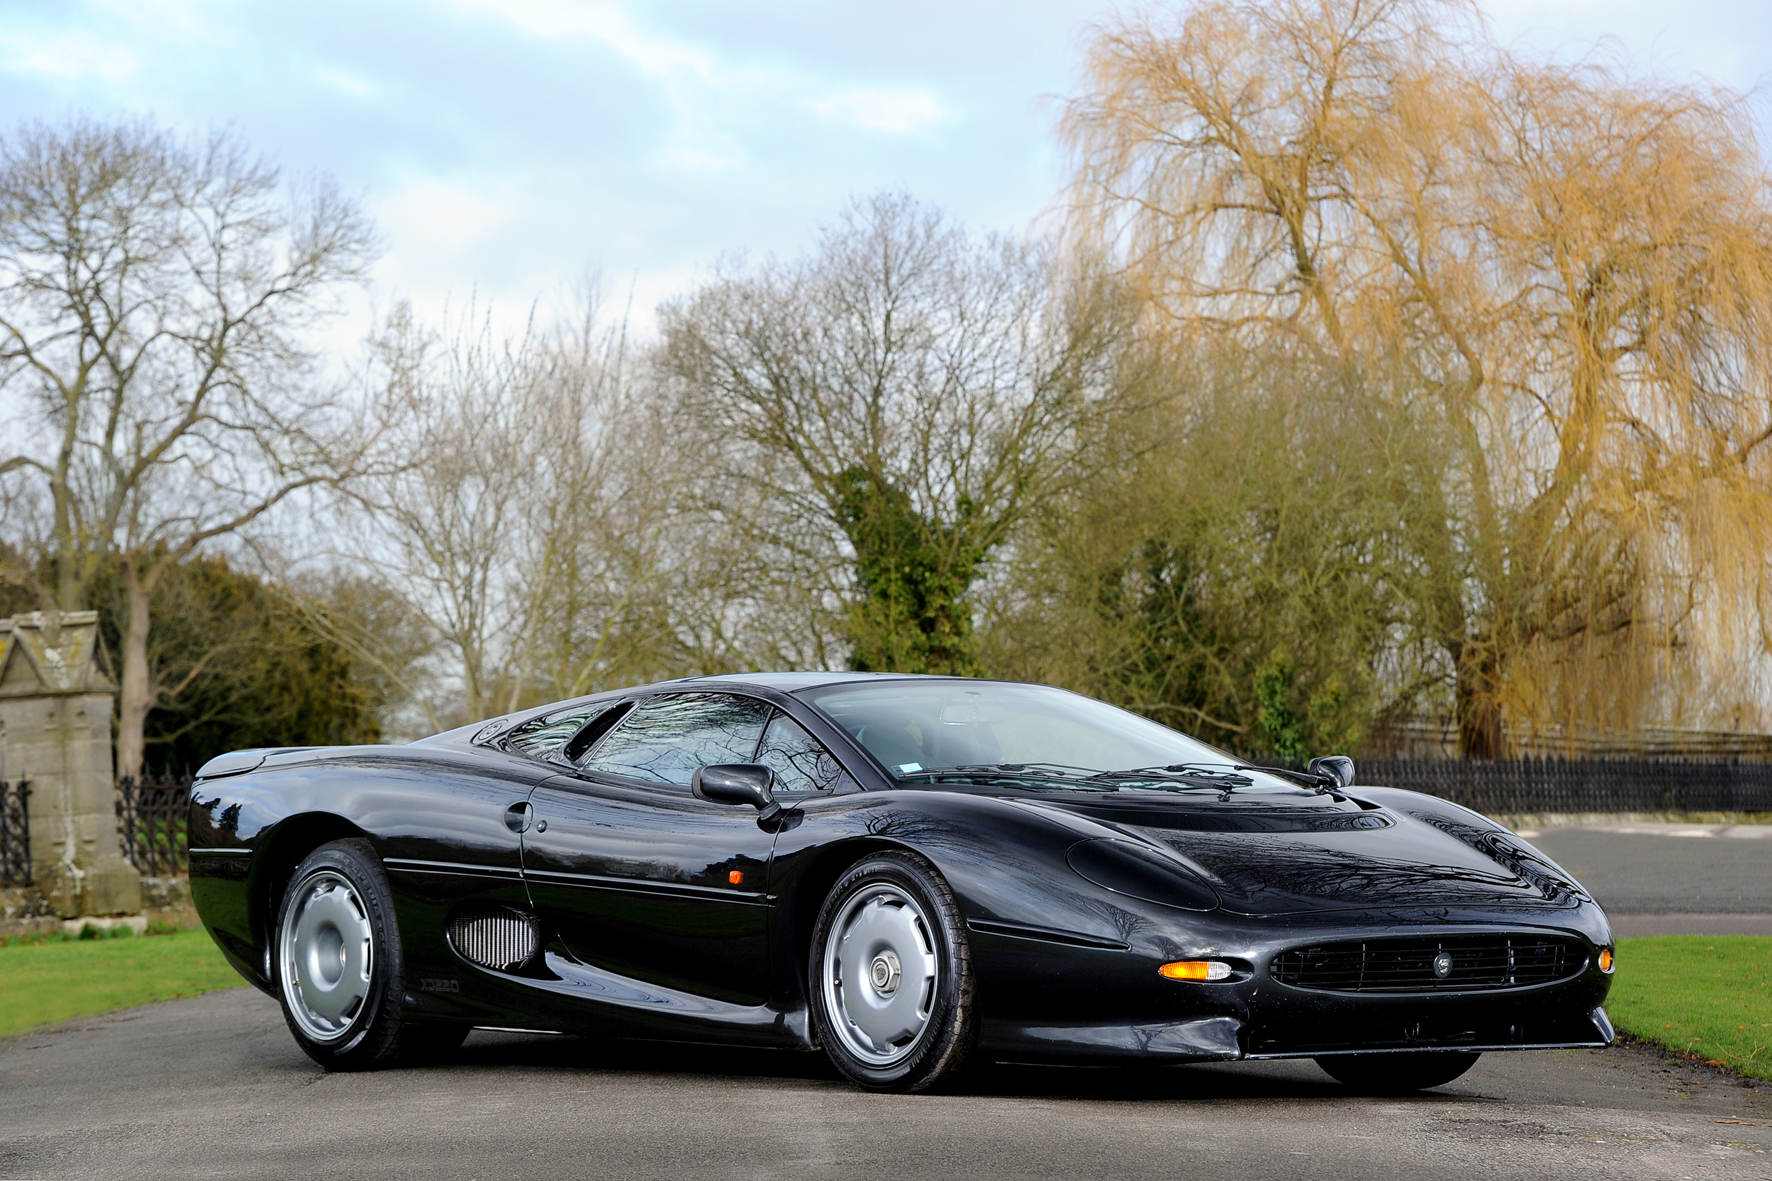 jaguar xj220 wallpaper #4